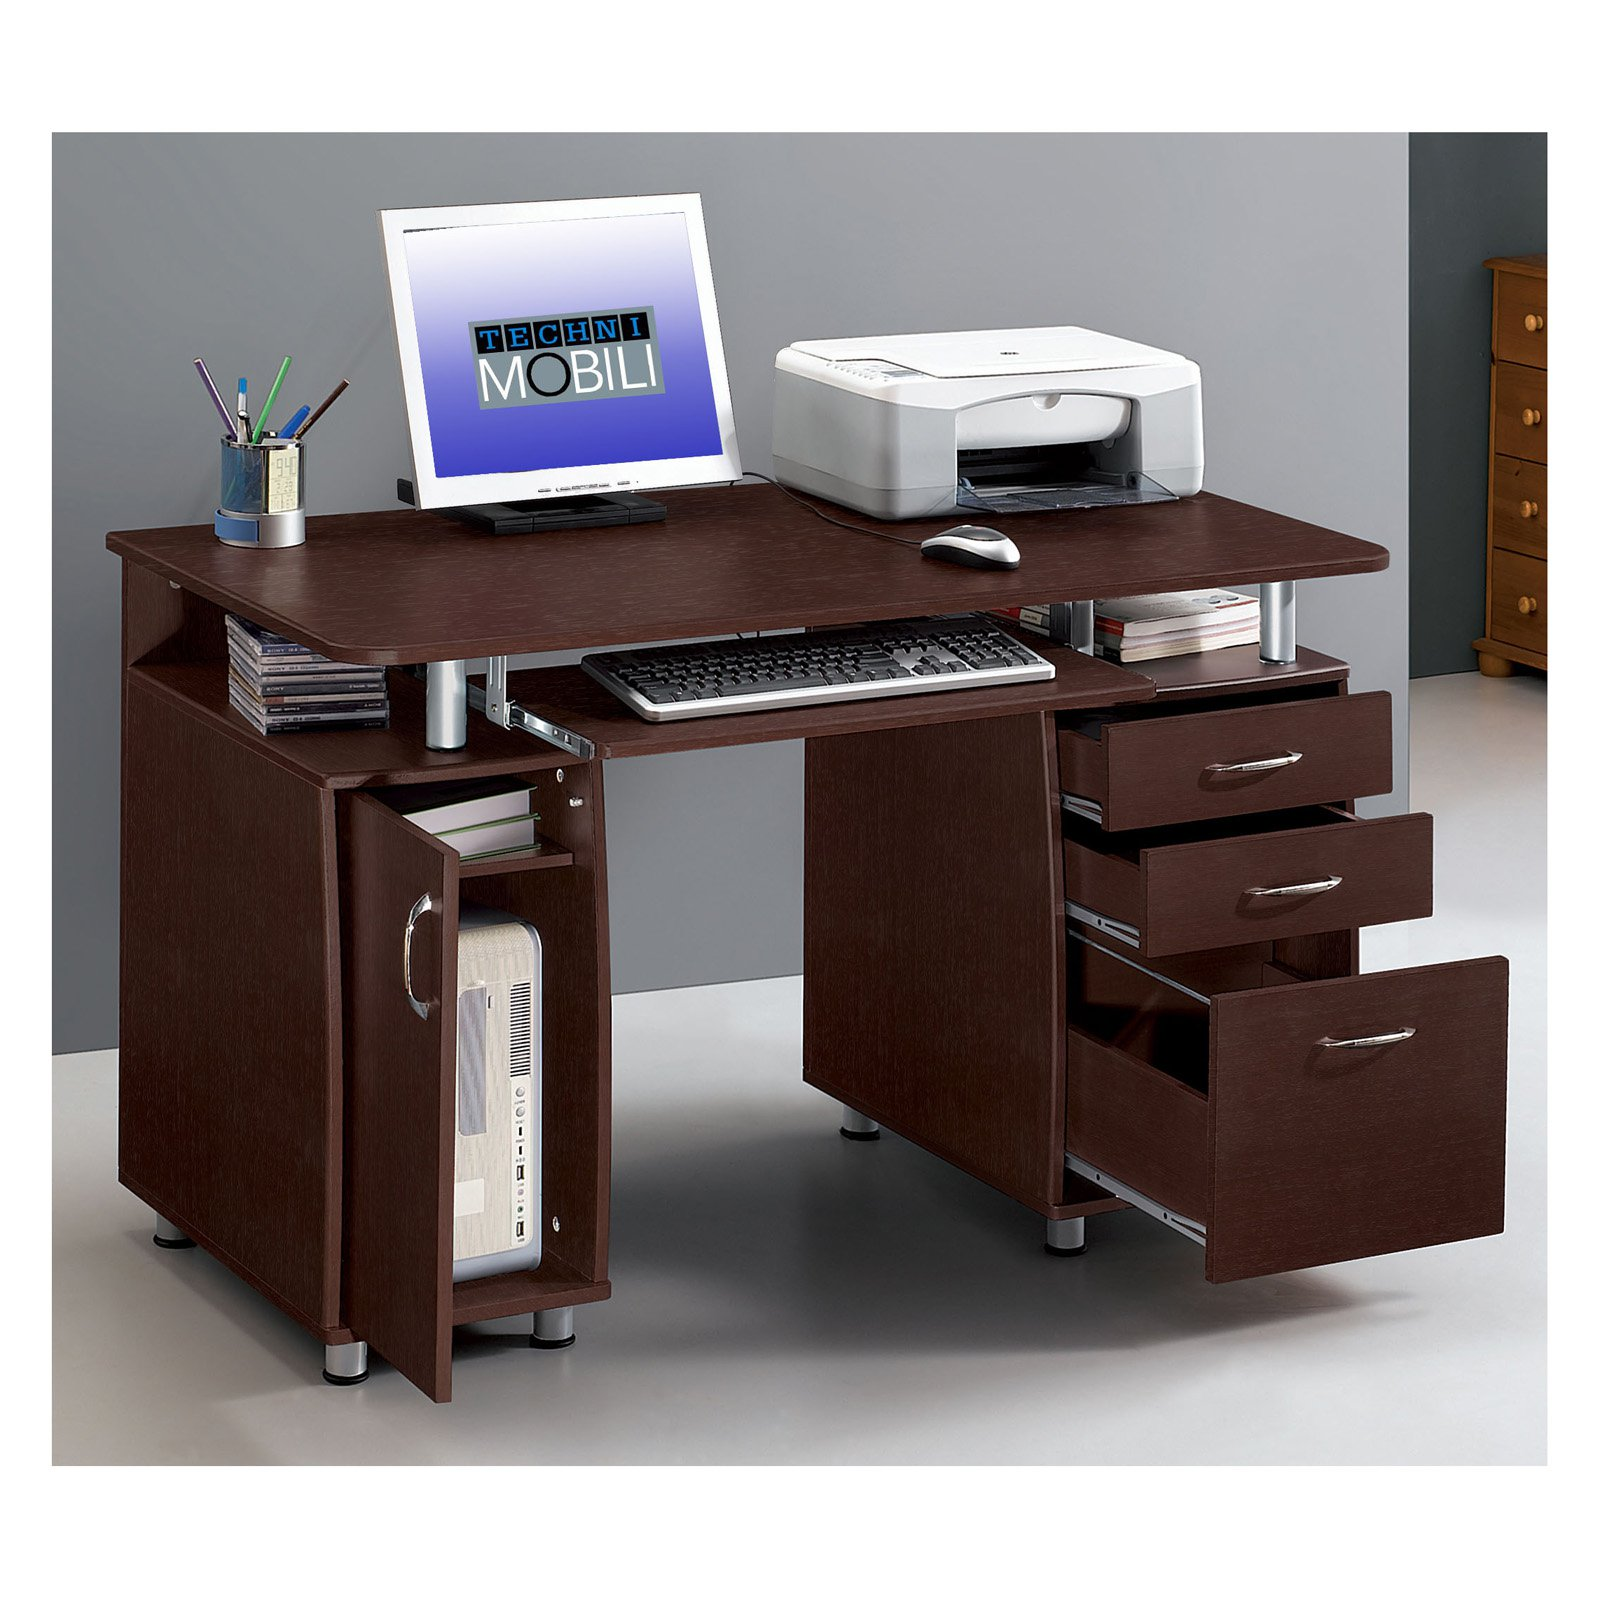 of ref sim luxury upright computer graphite aftu dp ie sbs desk from mobili puter techni pd awesome indust